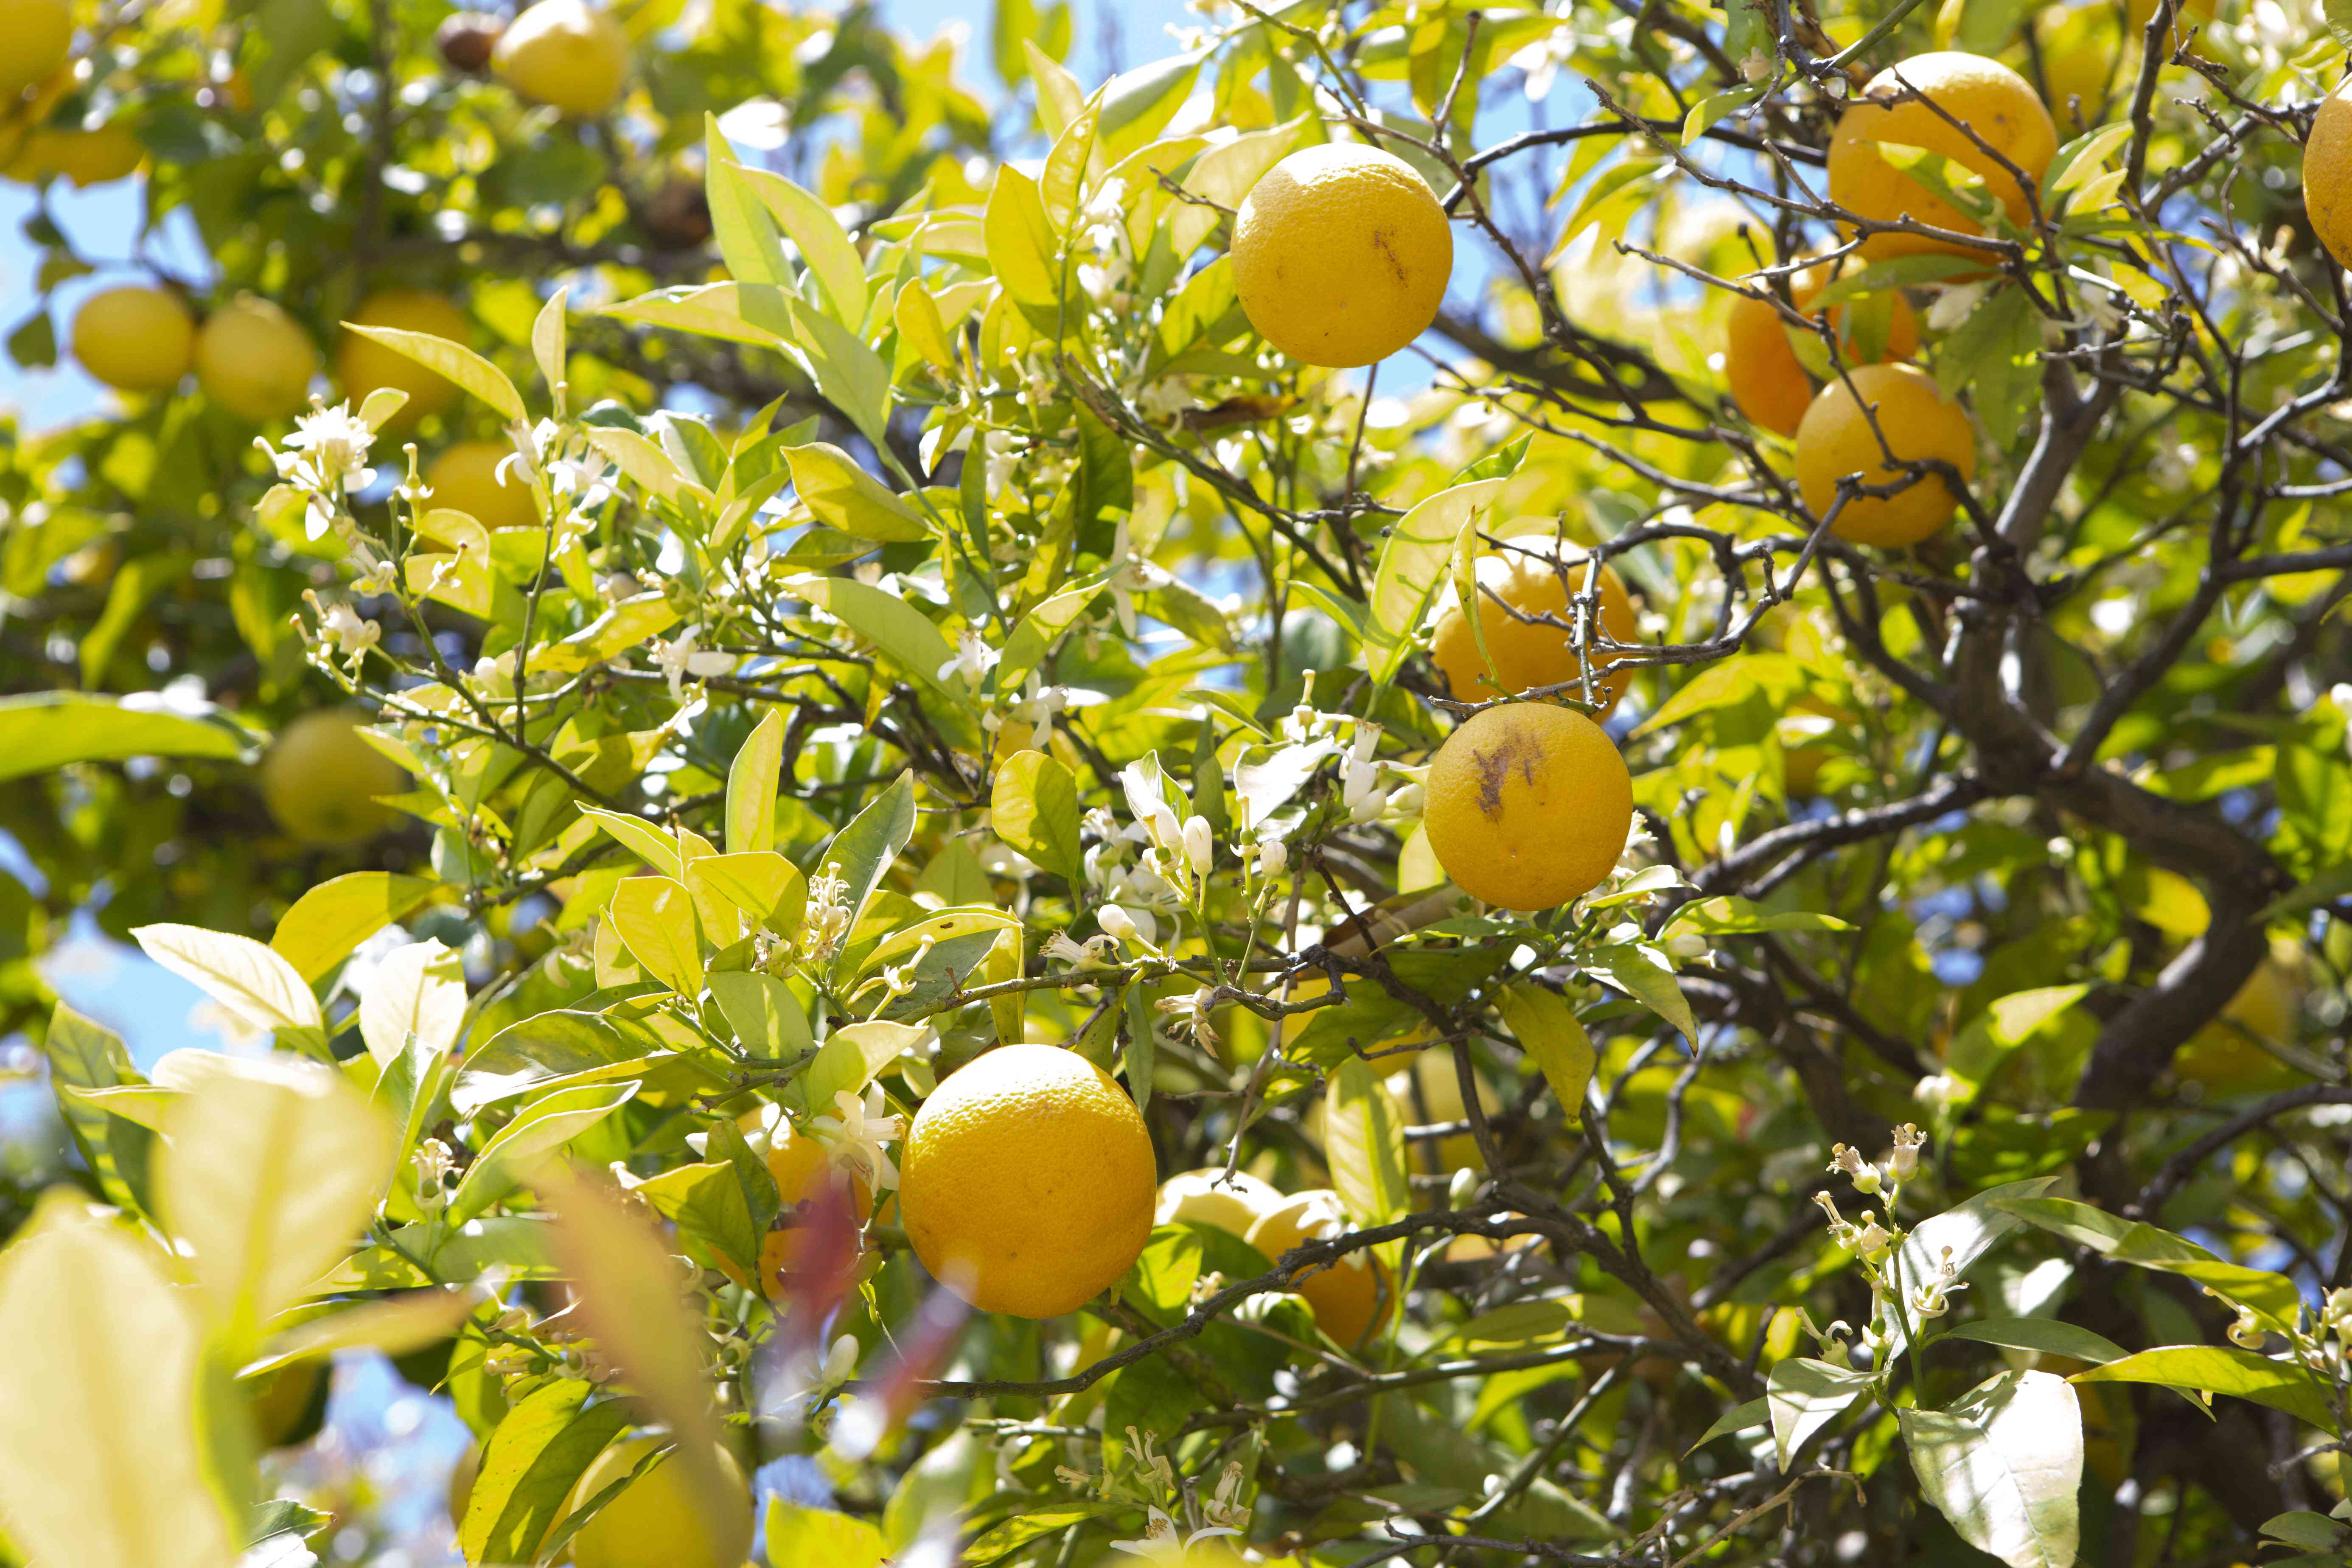 Lisbon lemon tree branches with yellow lemons and leaves in sunlight